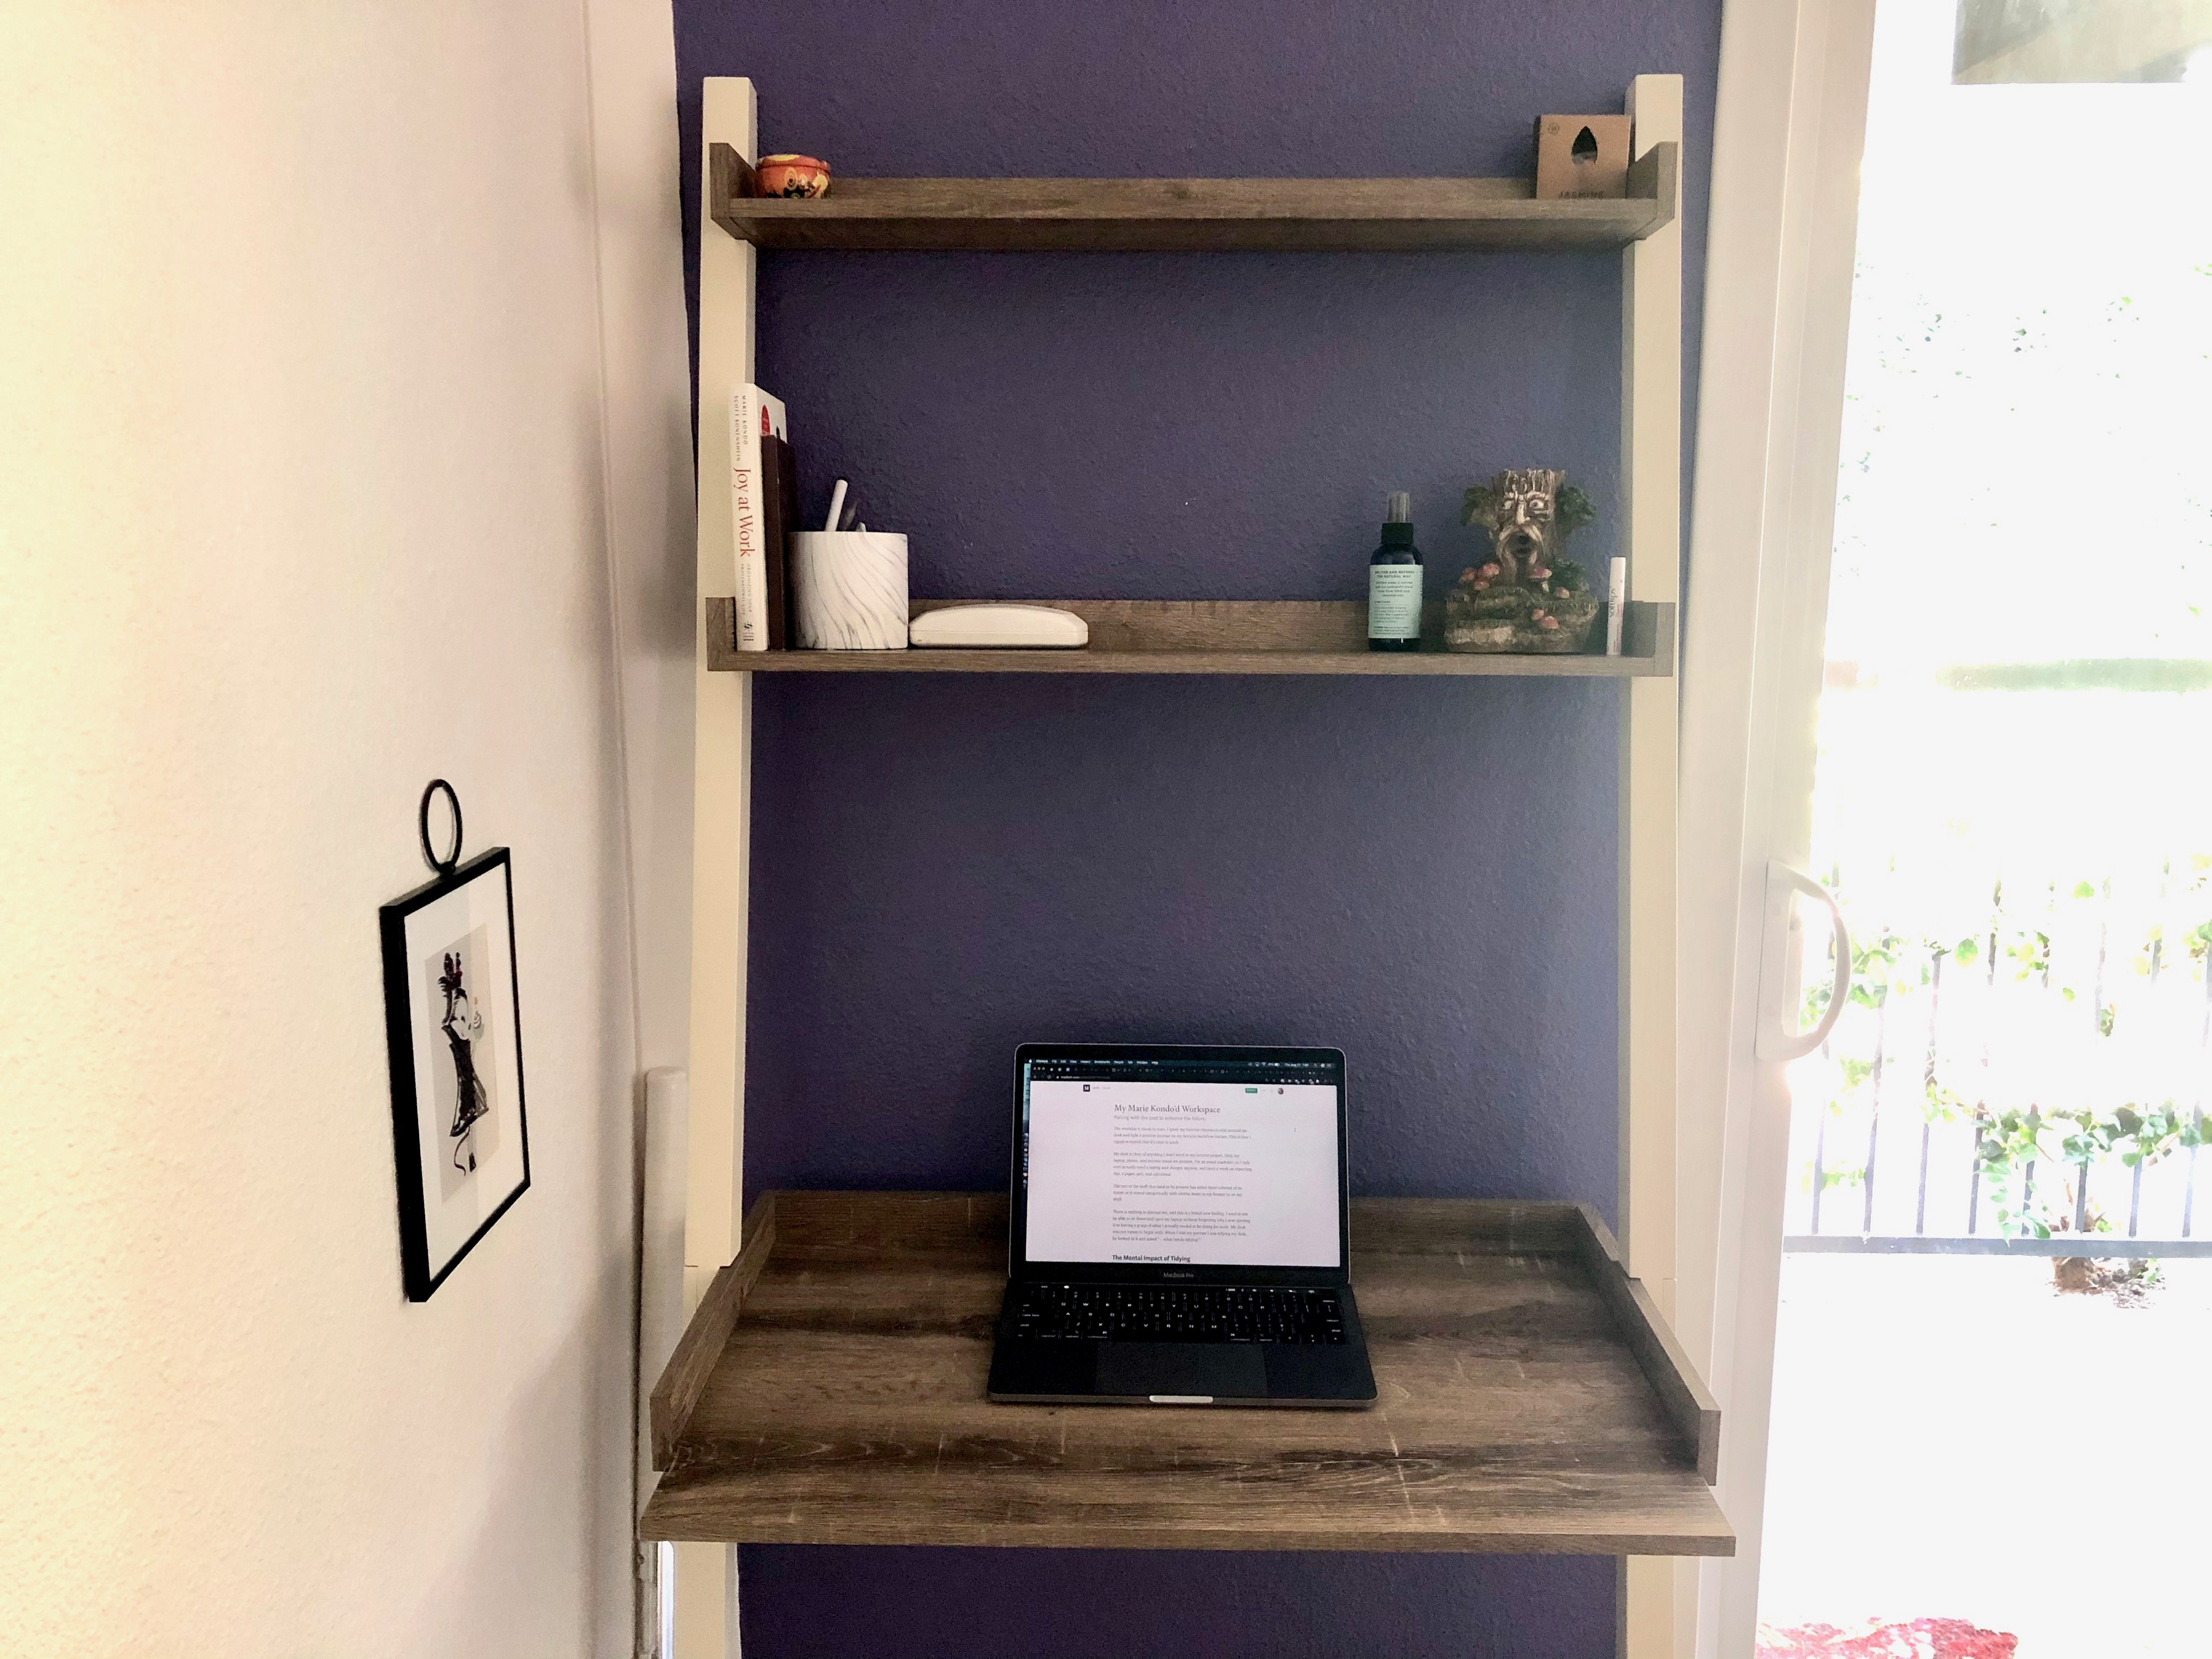 Desk with two shelves, neatly organized